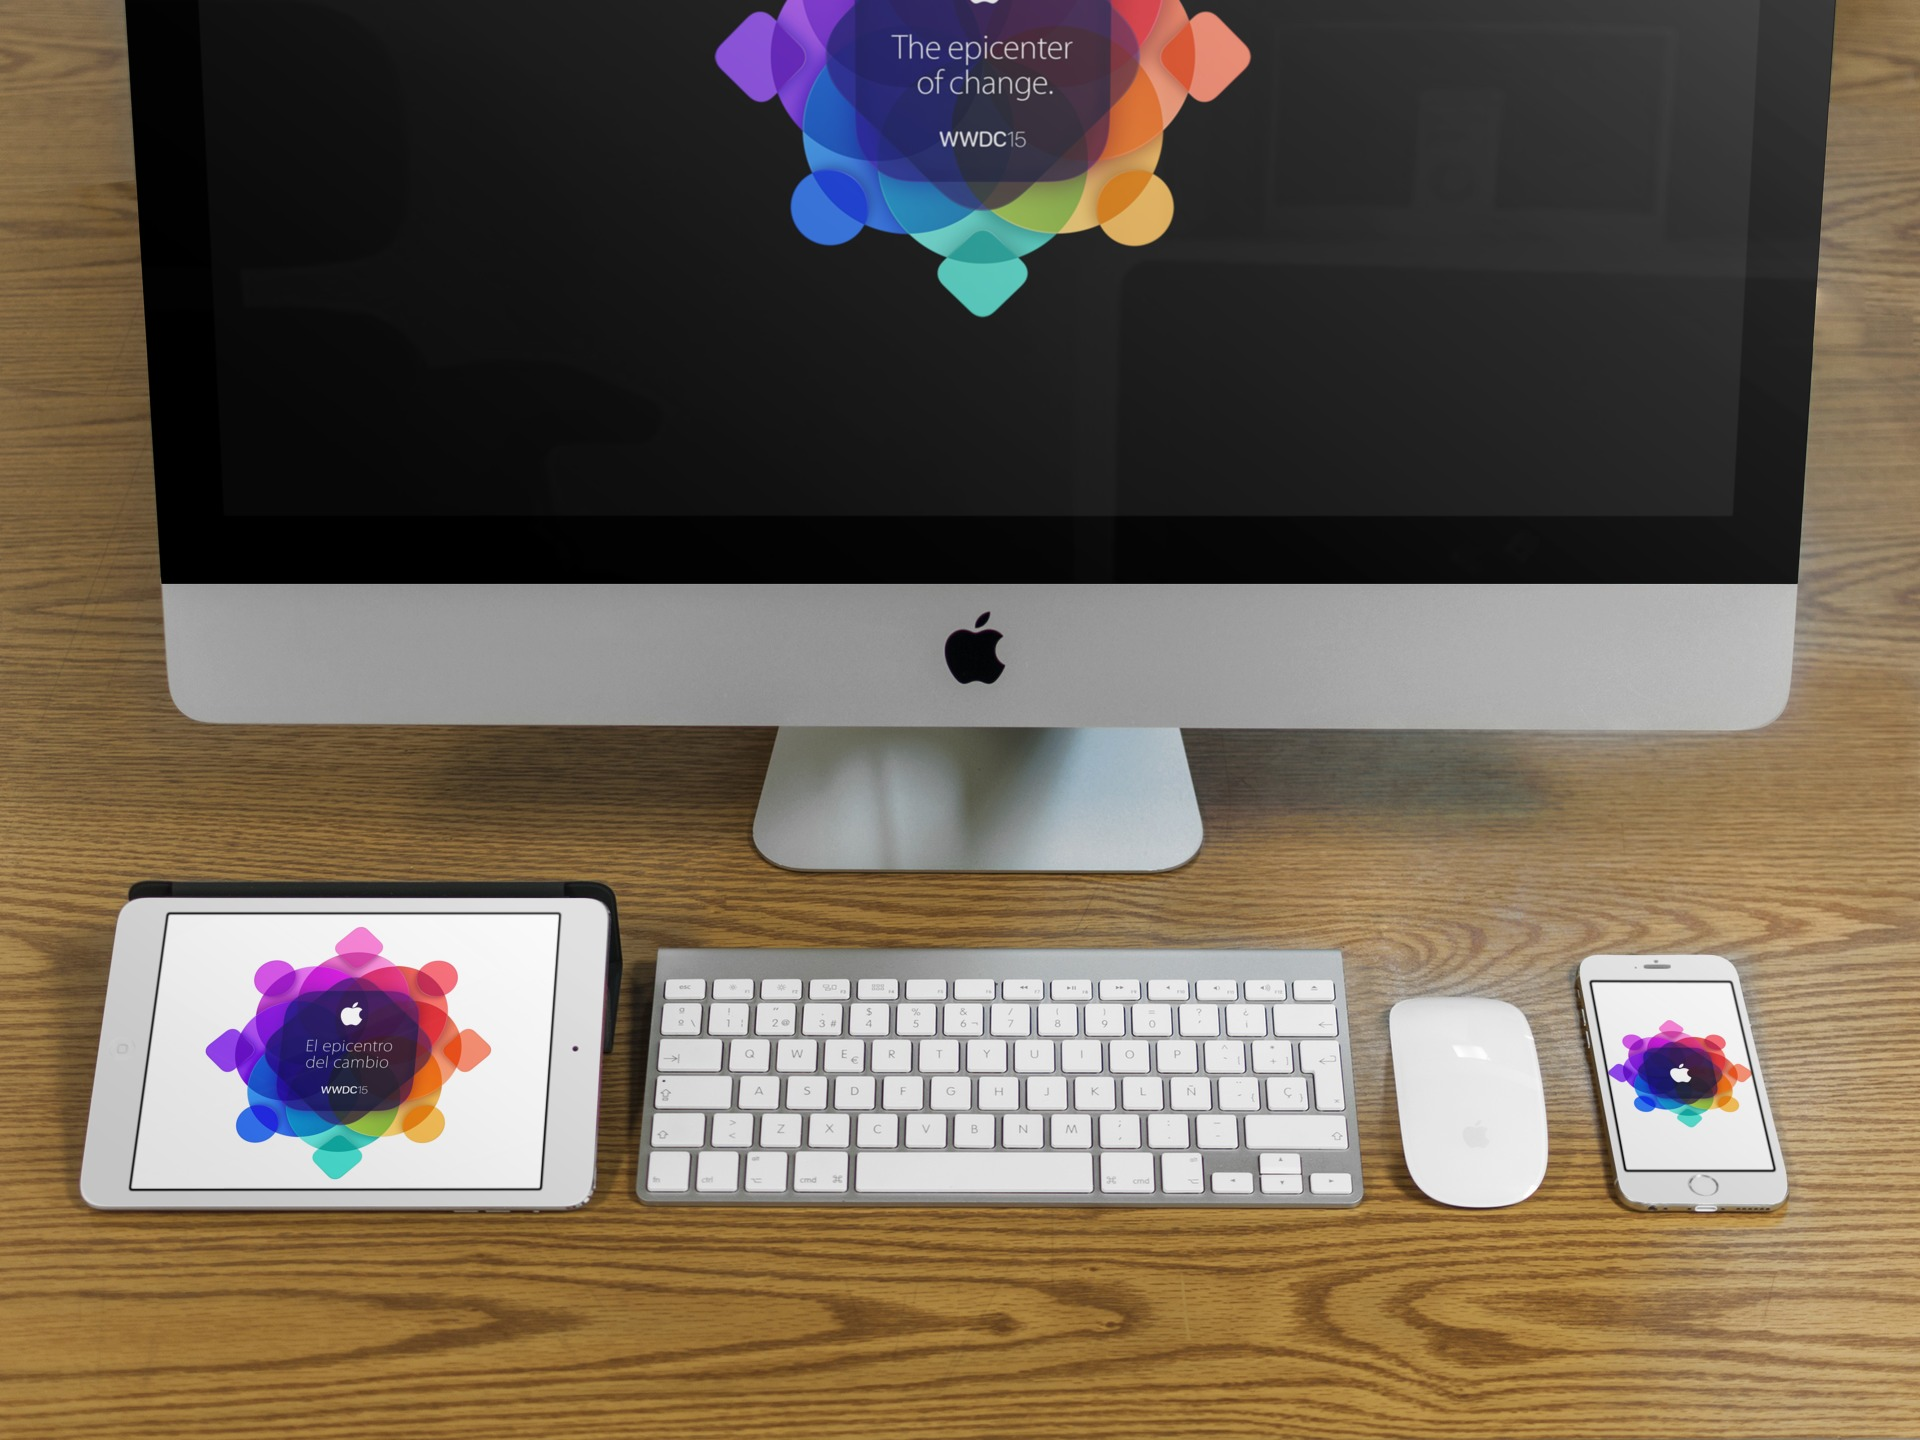 Apple WWDC 2015 Wallpaper Splash